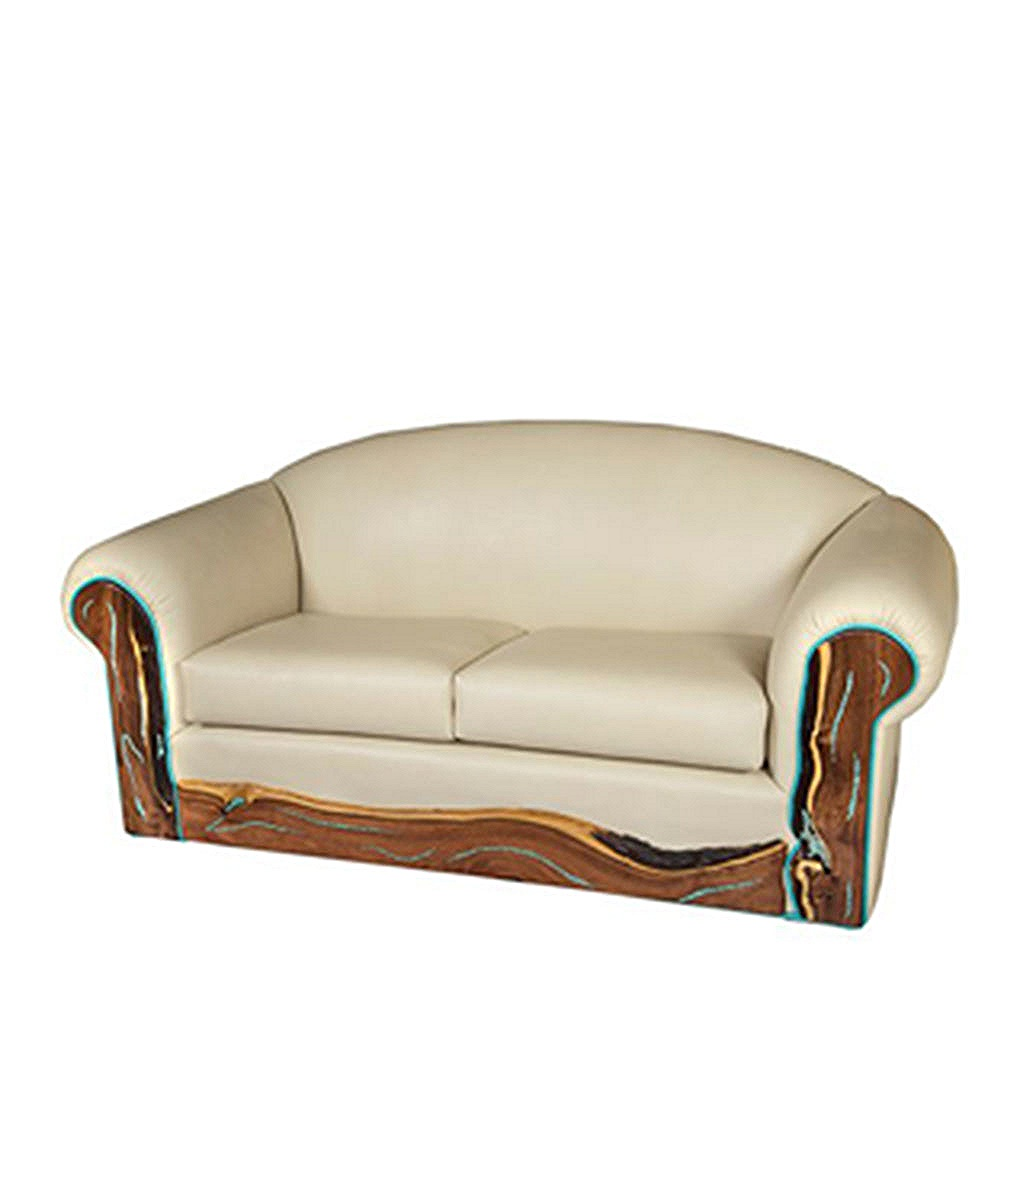 Turquoise inlay western leather sofa rustic artistry - Turquoise sofa ...